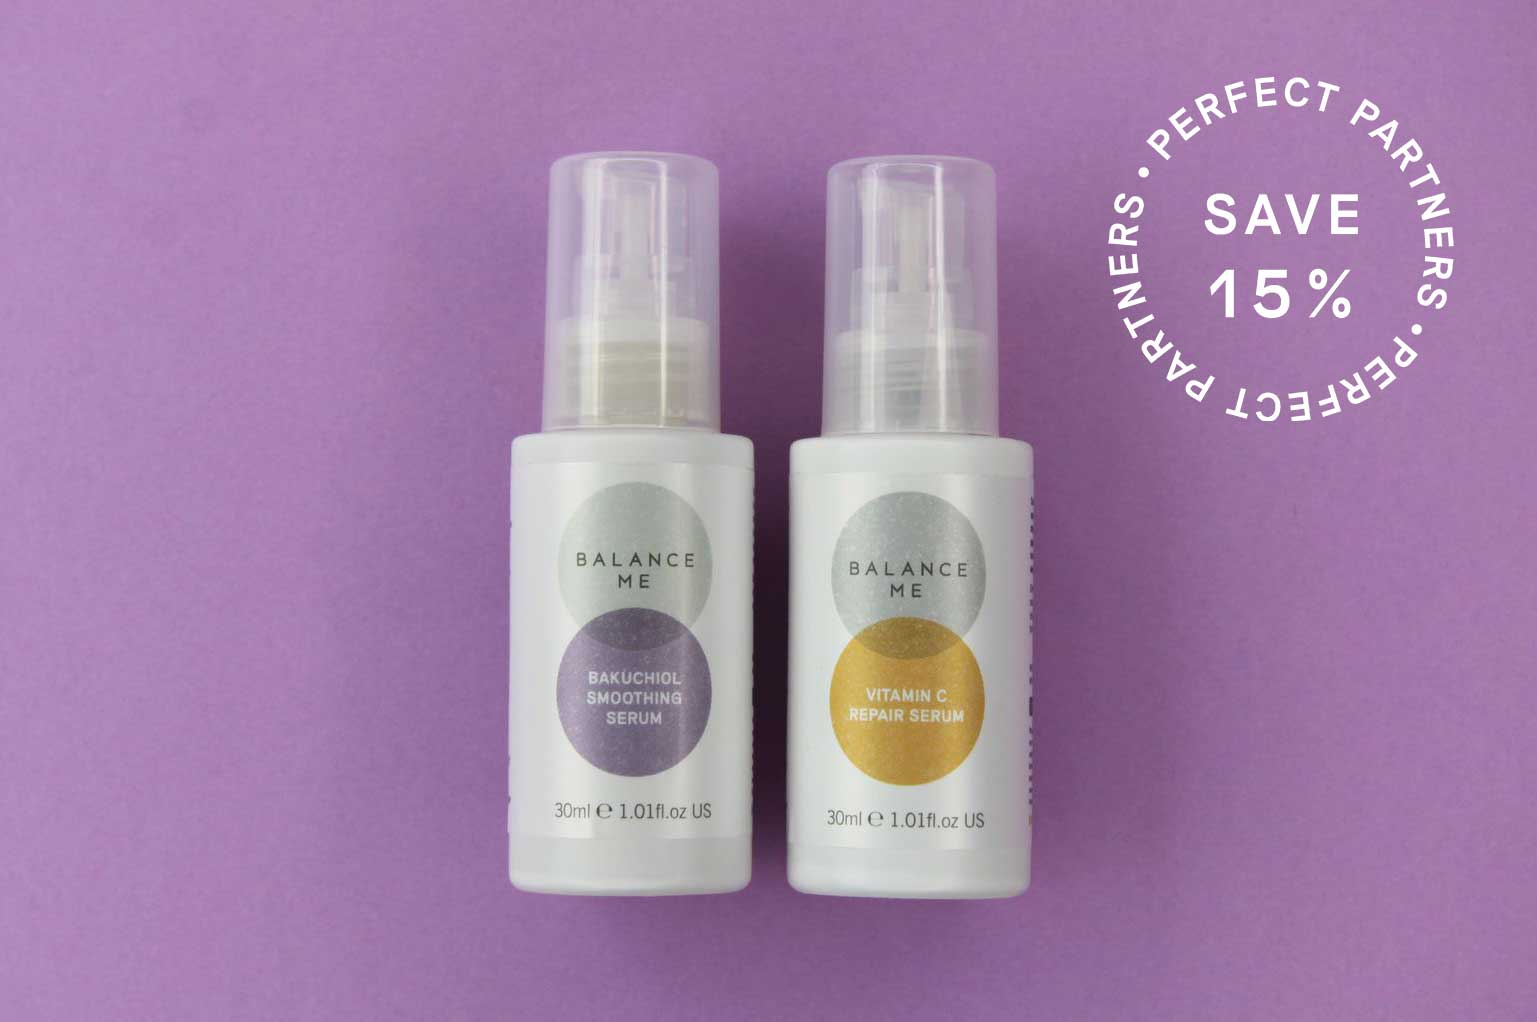 Partner up and save 15% when you buy our Day + Night kit